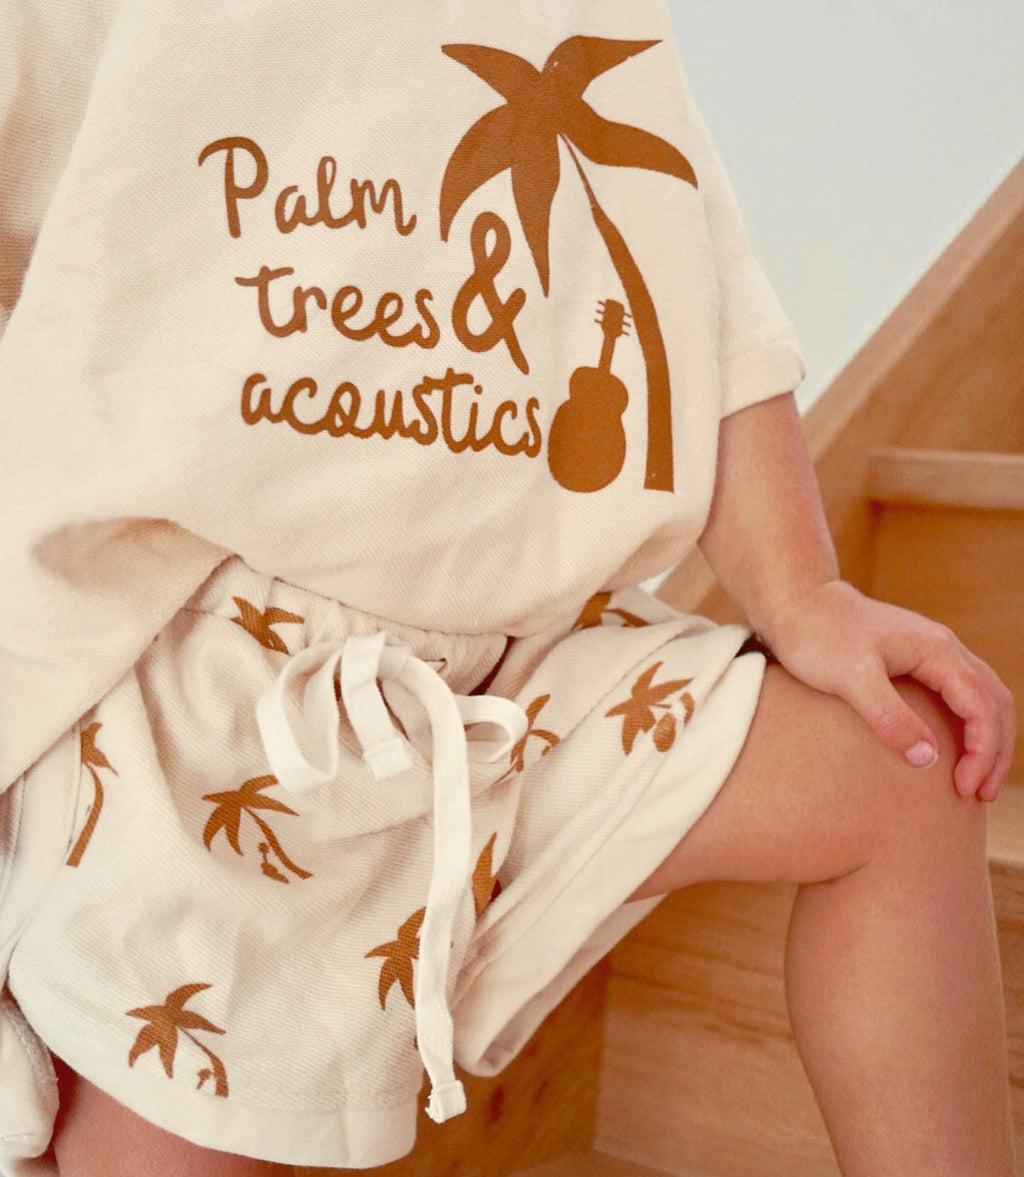 Palm Trees & Acoustics Special edition Baggy Tee